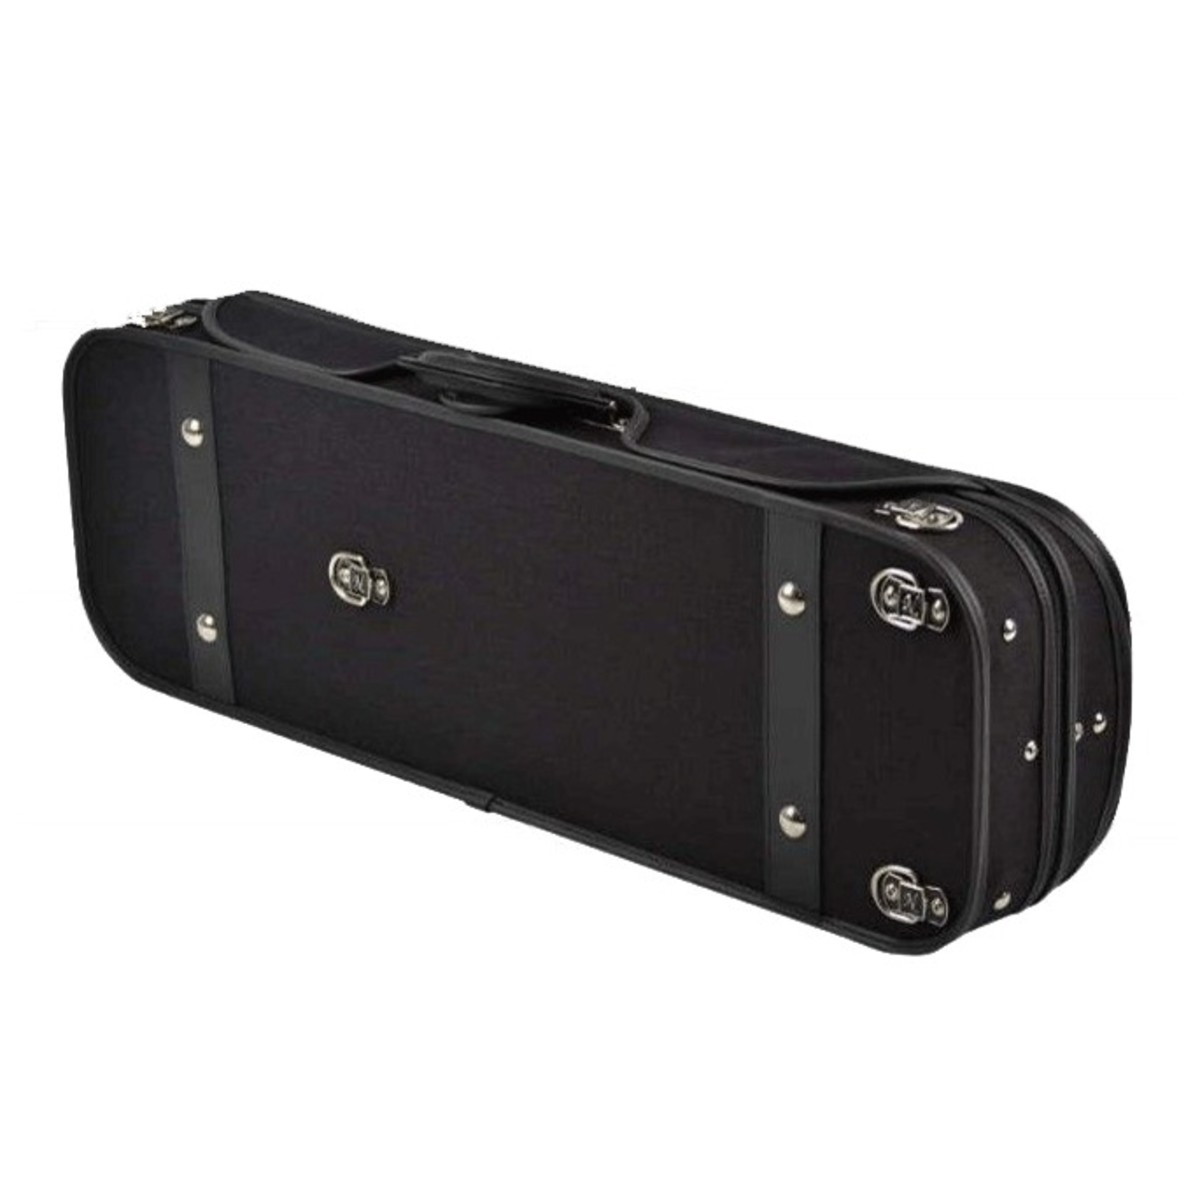 Negri milano violin case in black and burgundy at for Case a milano